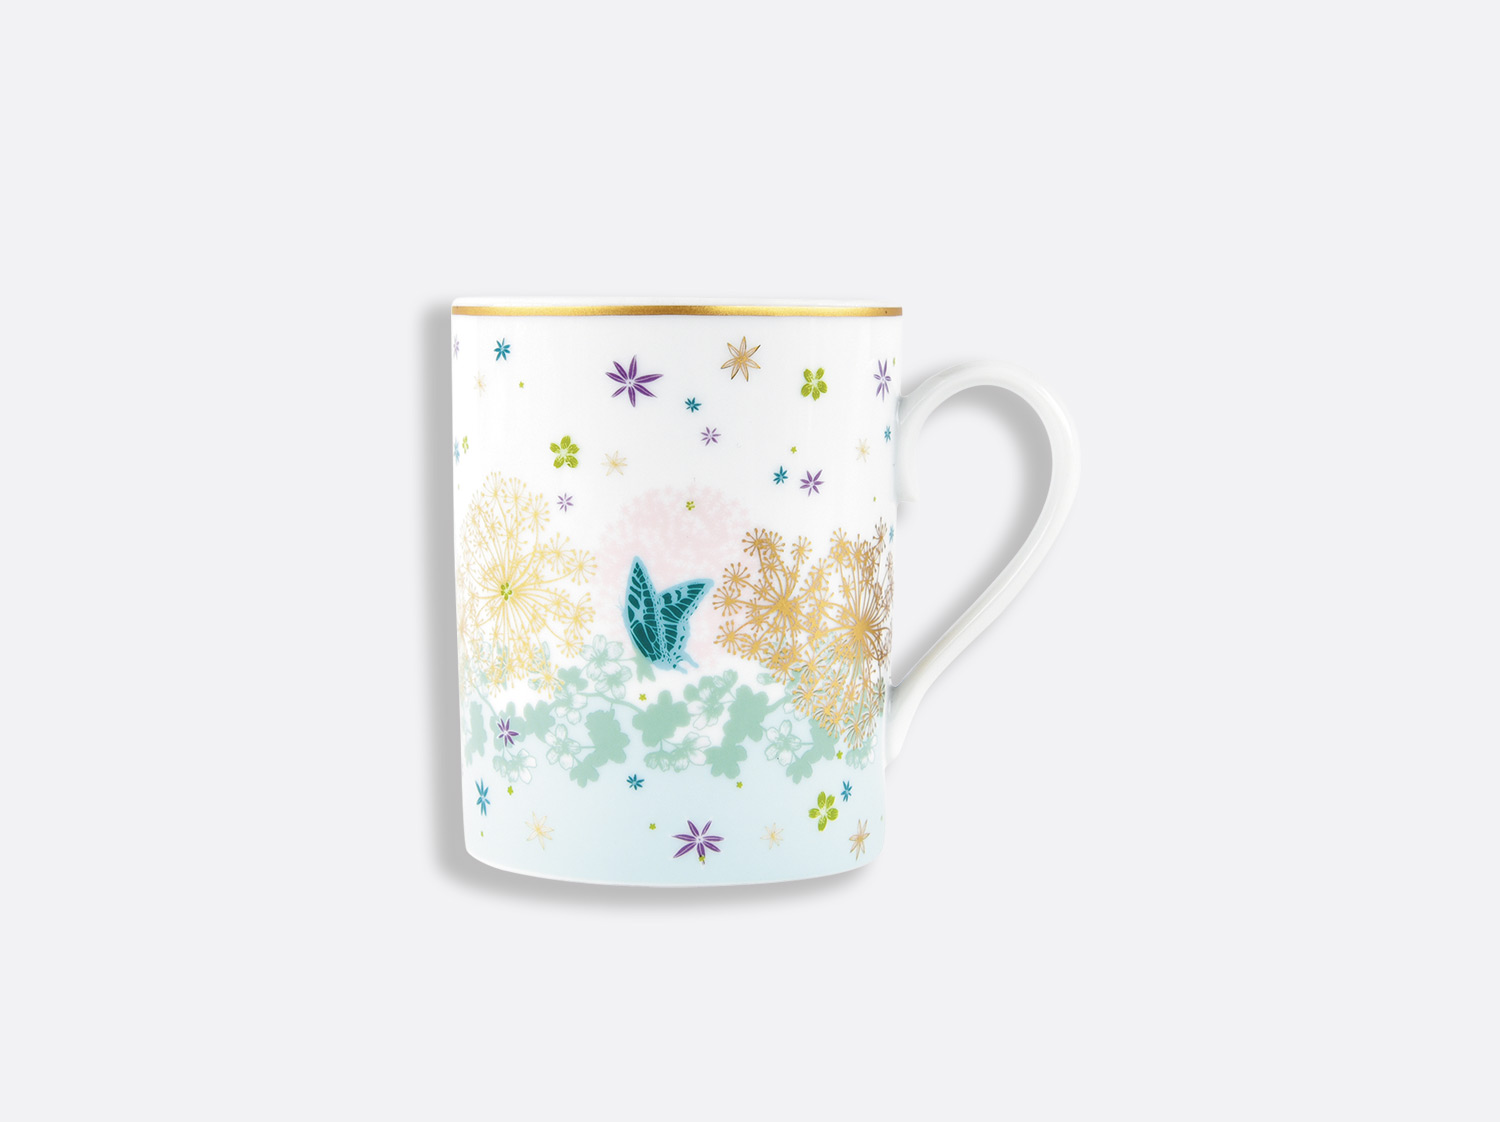 Mug 25 cl - A l'unité en porcelaine de la collection FÉERIE - MICHAËL CAILLOUX Bernardaud